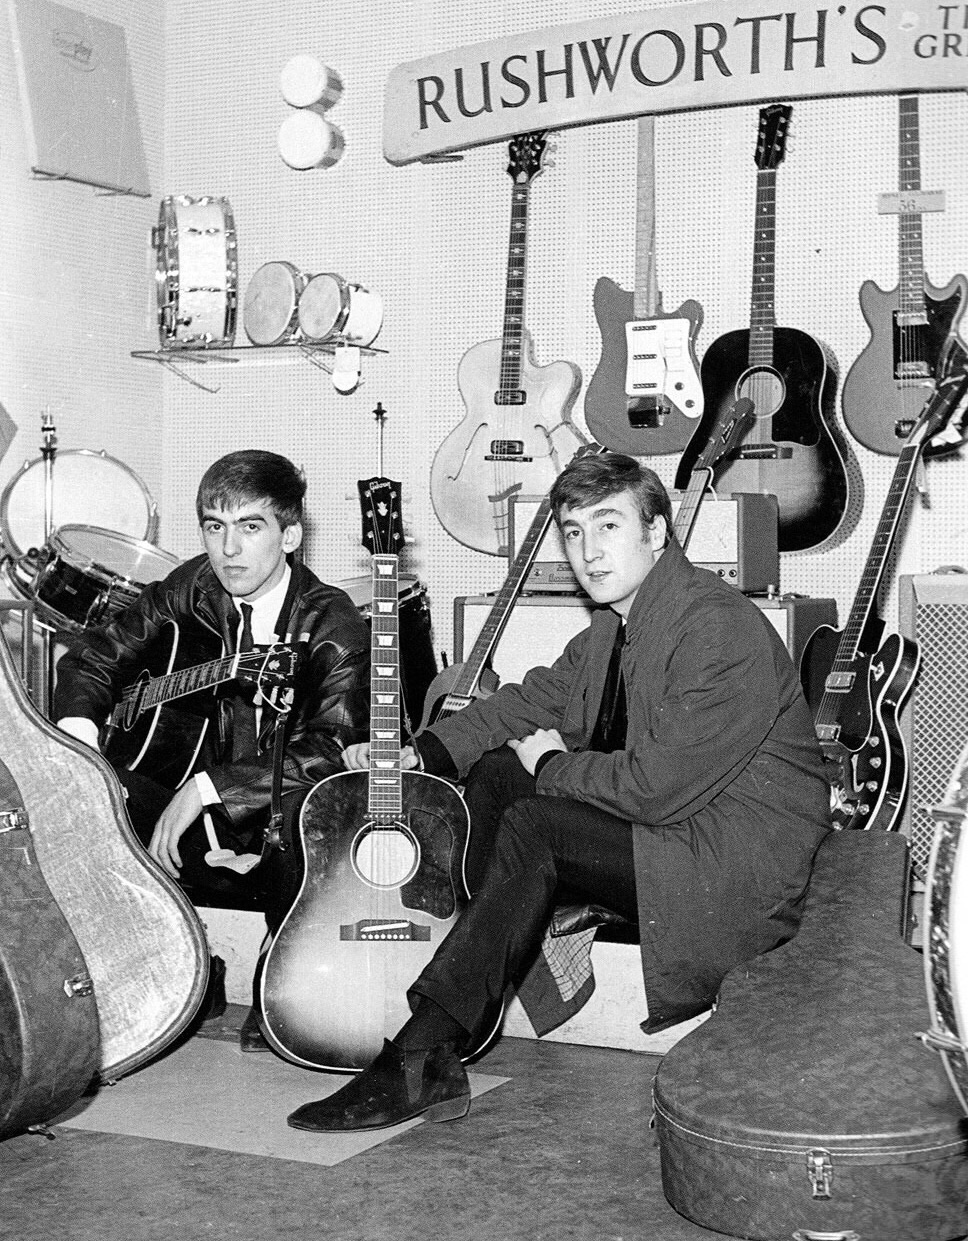 George Harrison and John Lennon in a guitar shop, 1962.